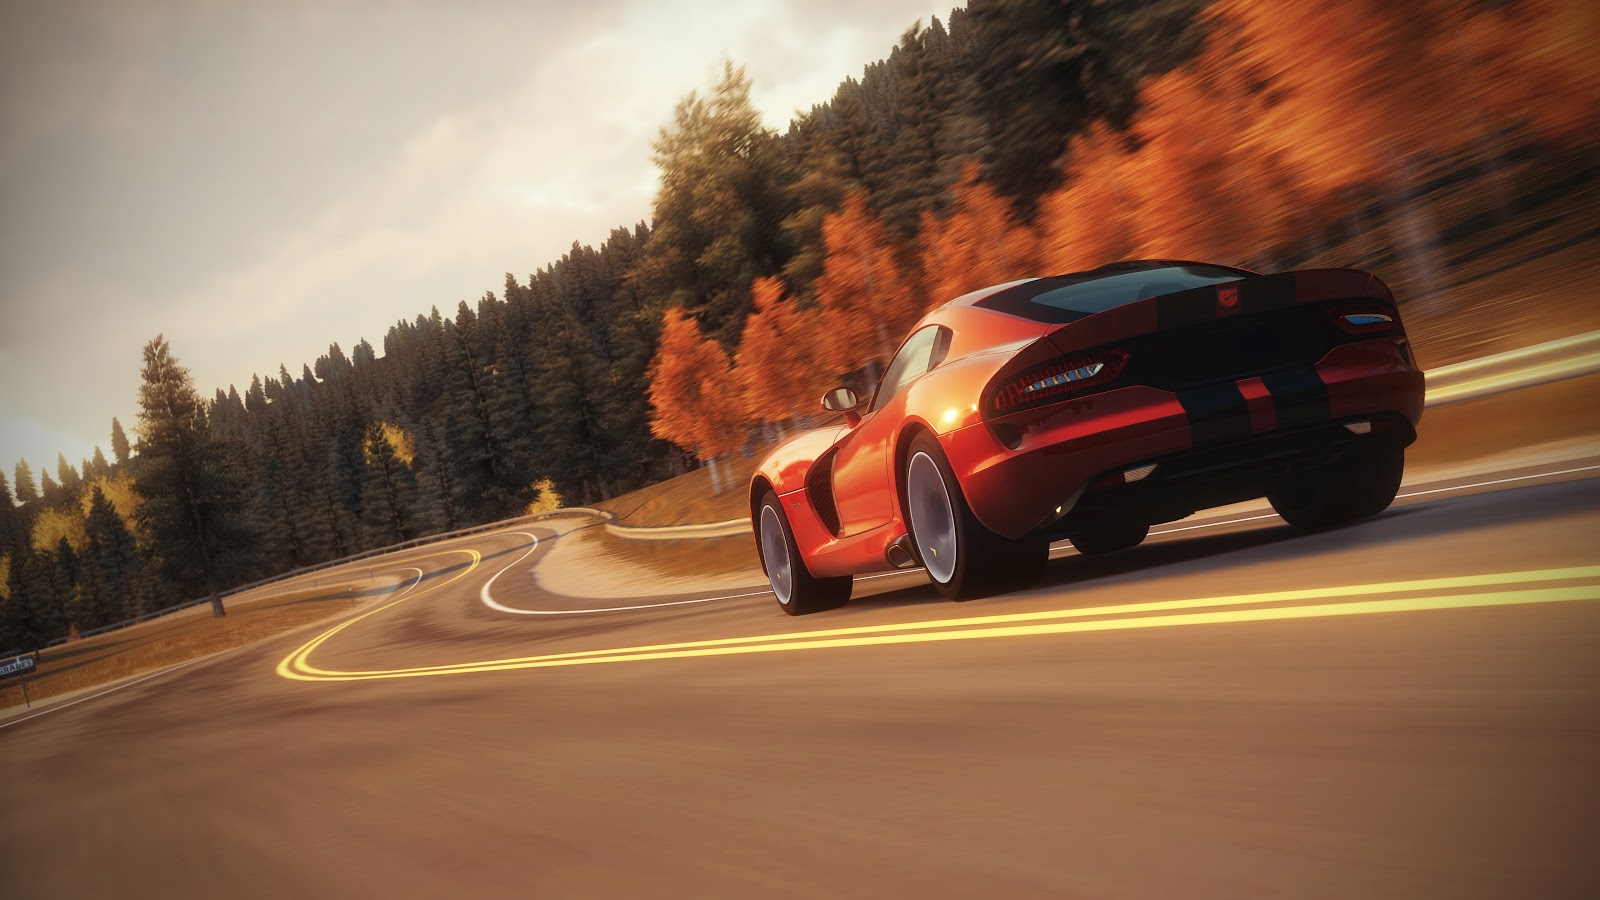 Forza Horizon HD & Widescreen Wallpaper 0.594940035799892